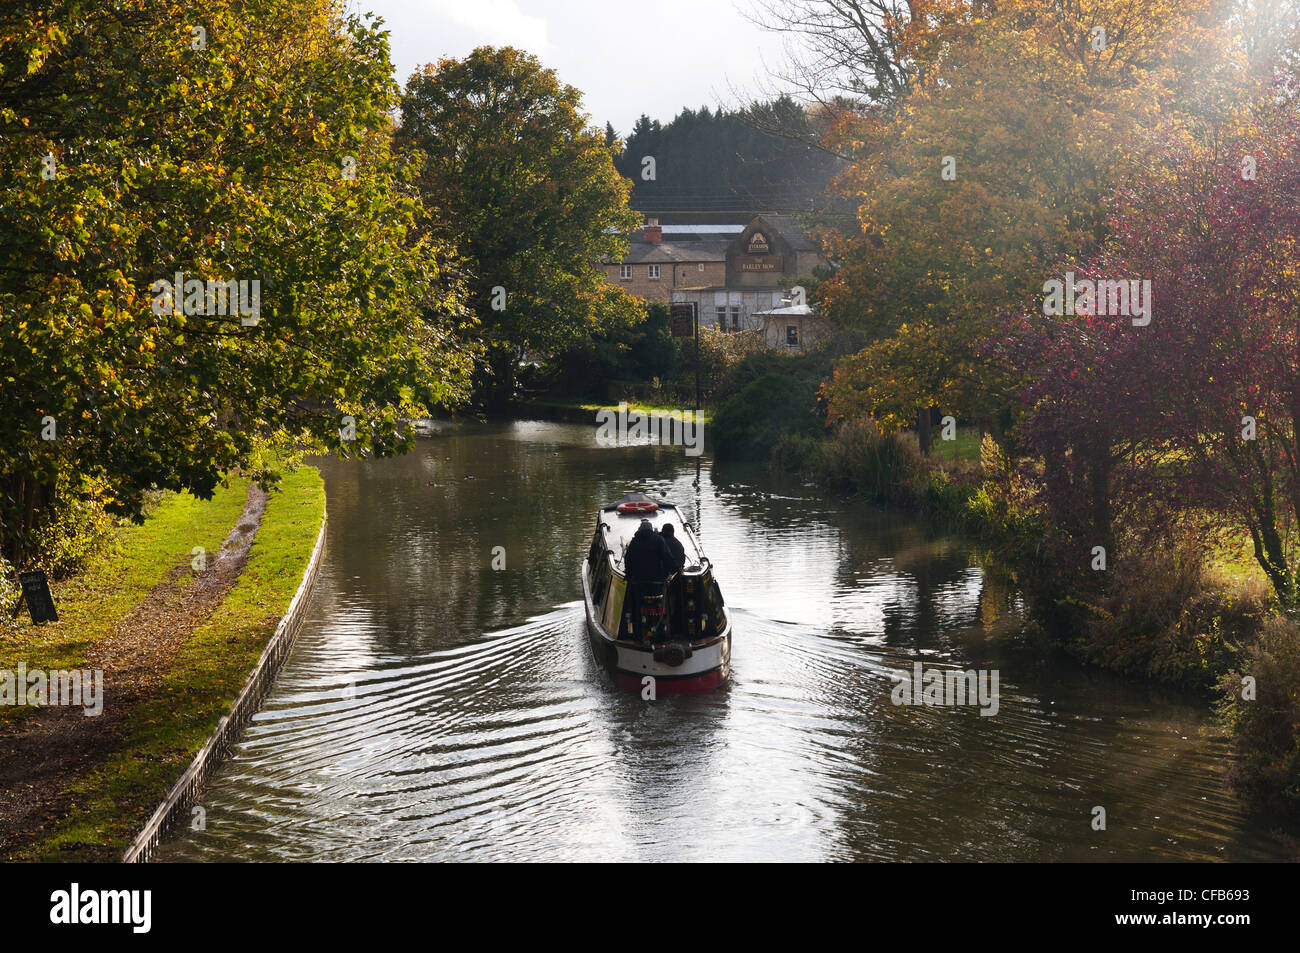 Narrowboat cruising on the Grand Union Canal in Cosgrove, Northamptonshire, England, UK. - Stock Image